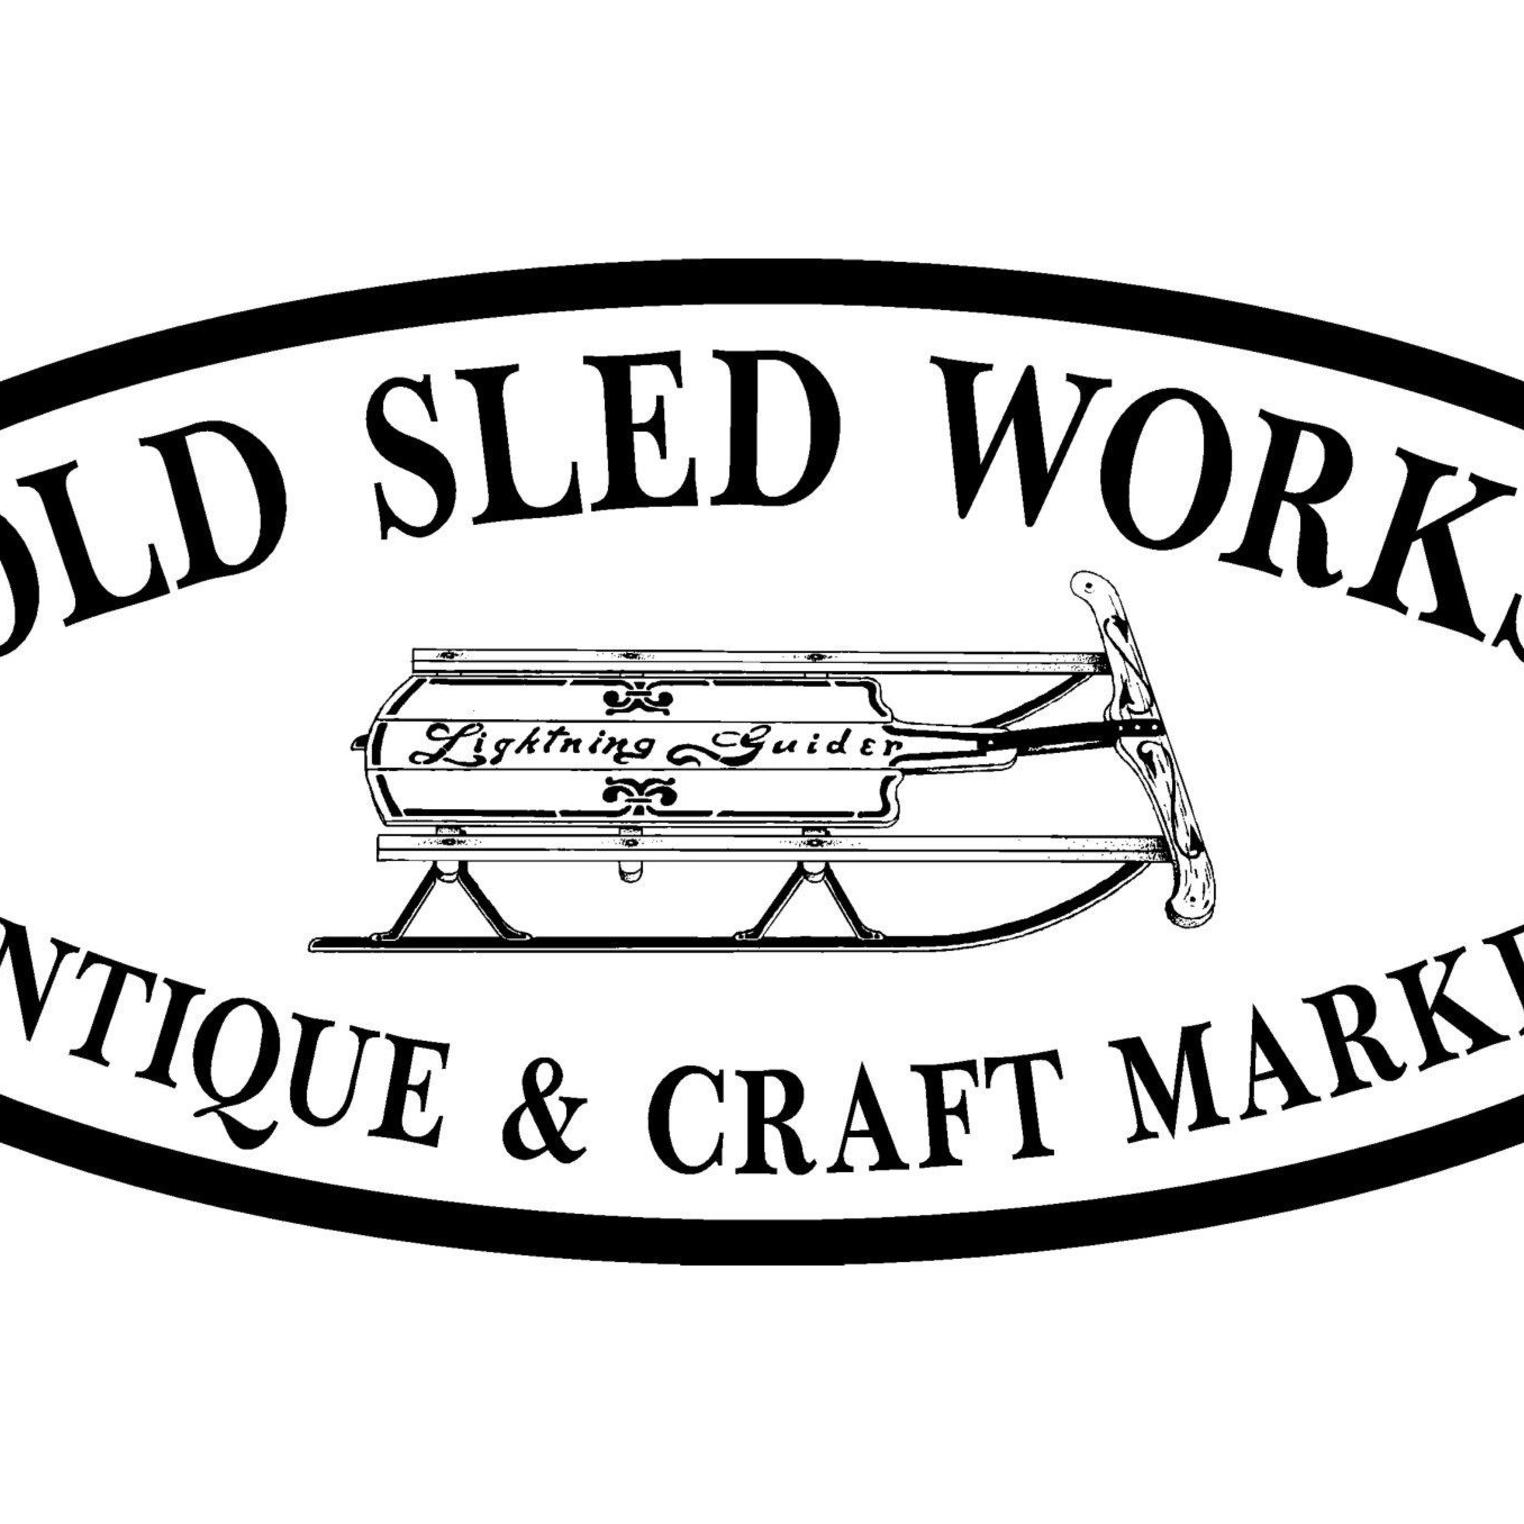 Old Sled Works Antiques and Craft Market